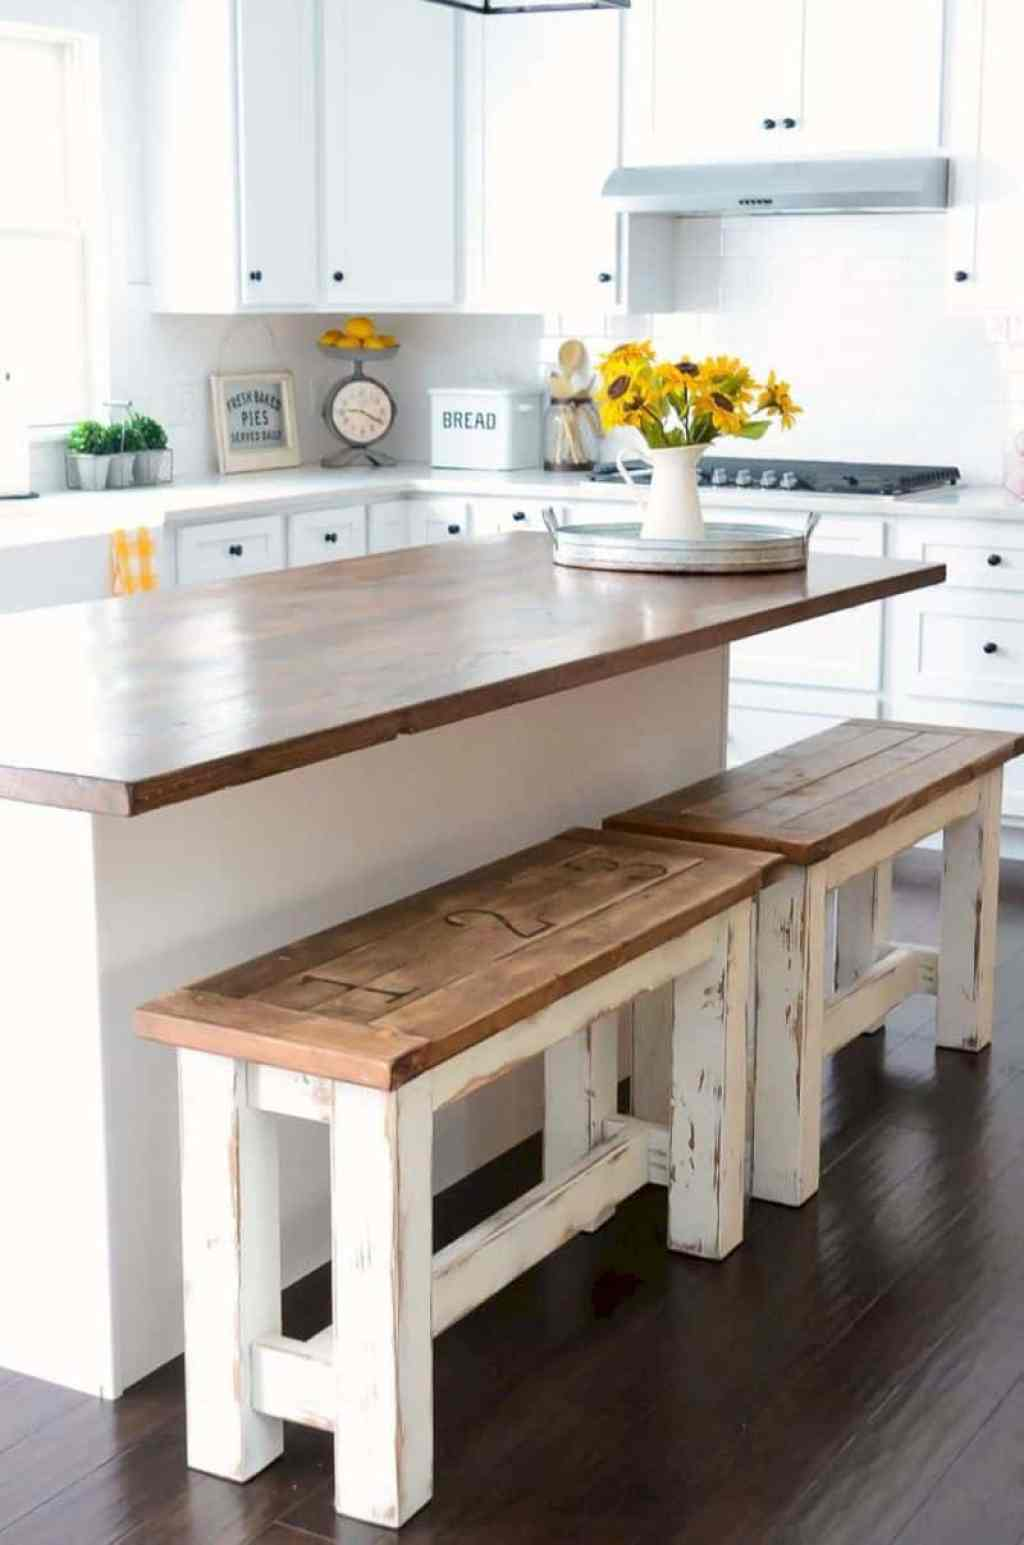 10 farmhouse kitchen decor ideas that would make joanna gaines proud - the savvy couple